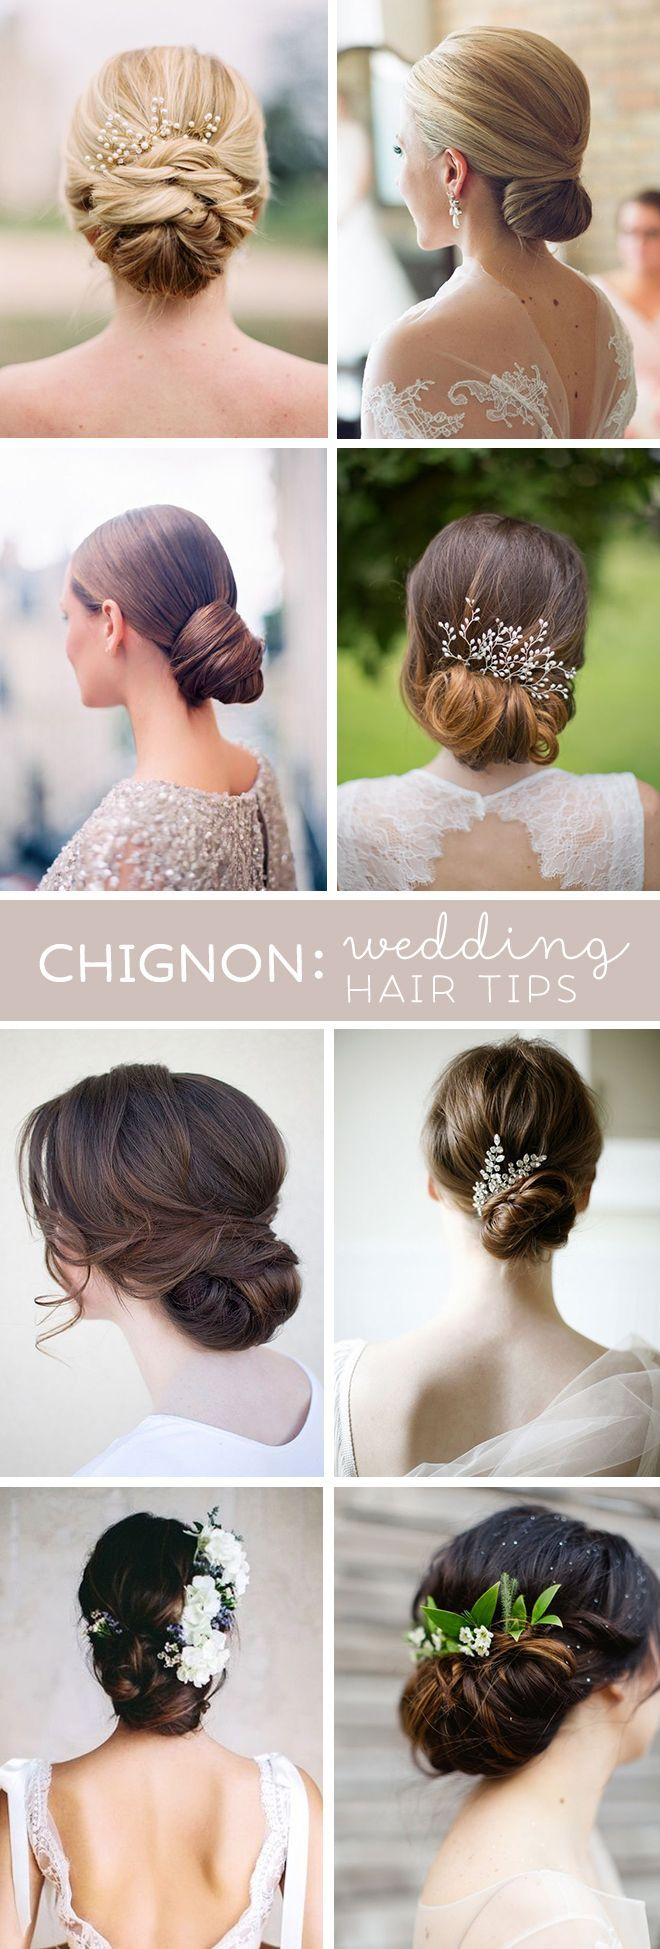 best wedding images on pinterest wedding hair styles hair